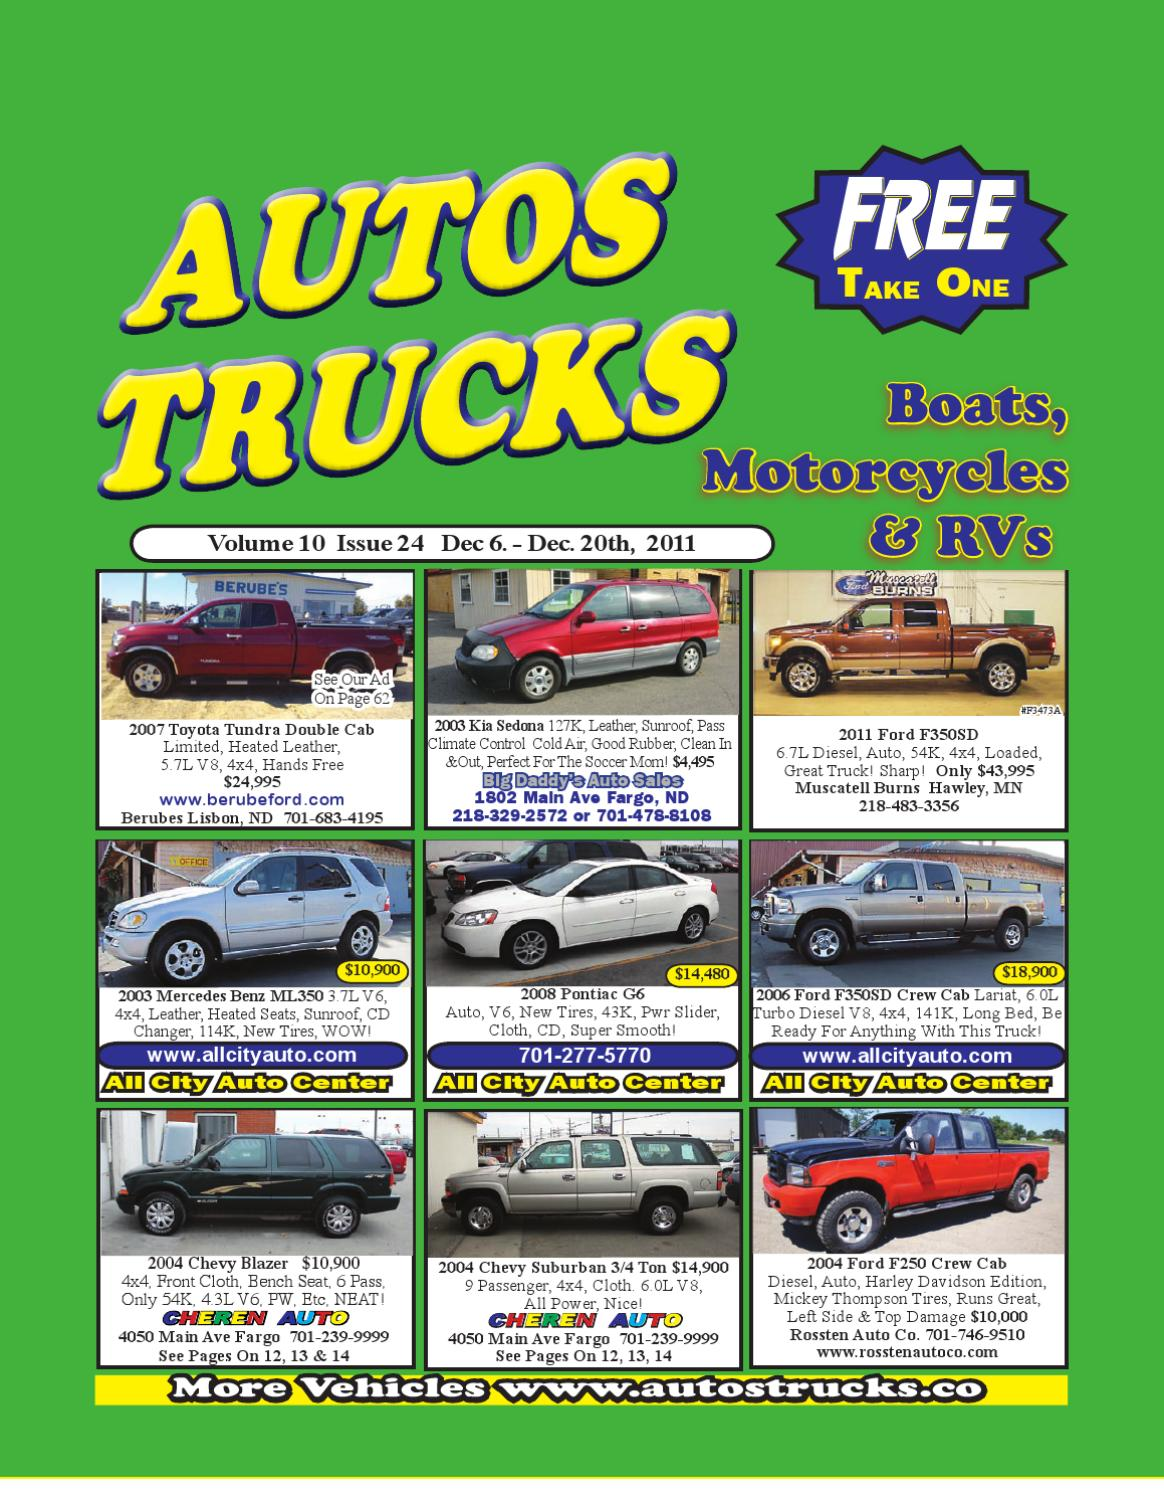 Fabulous Autos Trucks Issue 24 Volume 10 By Autos Trucks Issuu Pabps2019 Chair Design Images Pabps2019Com